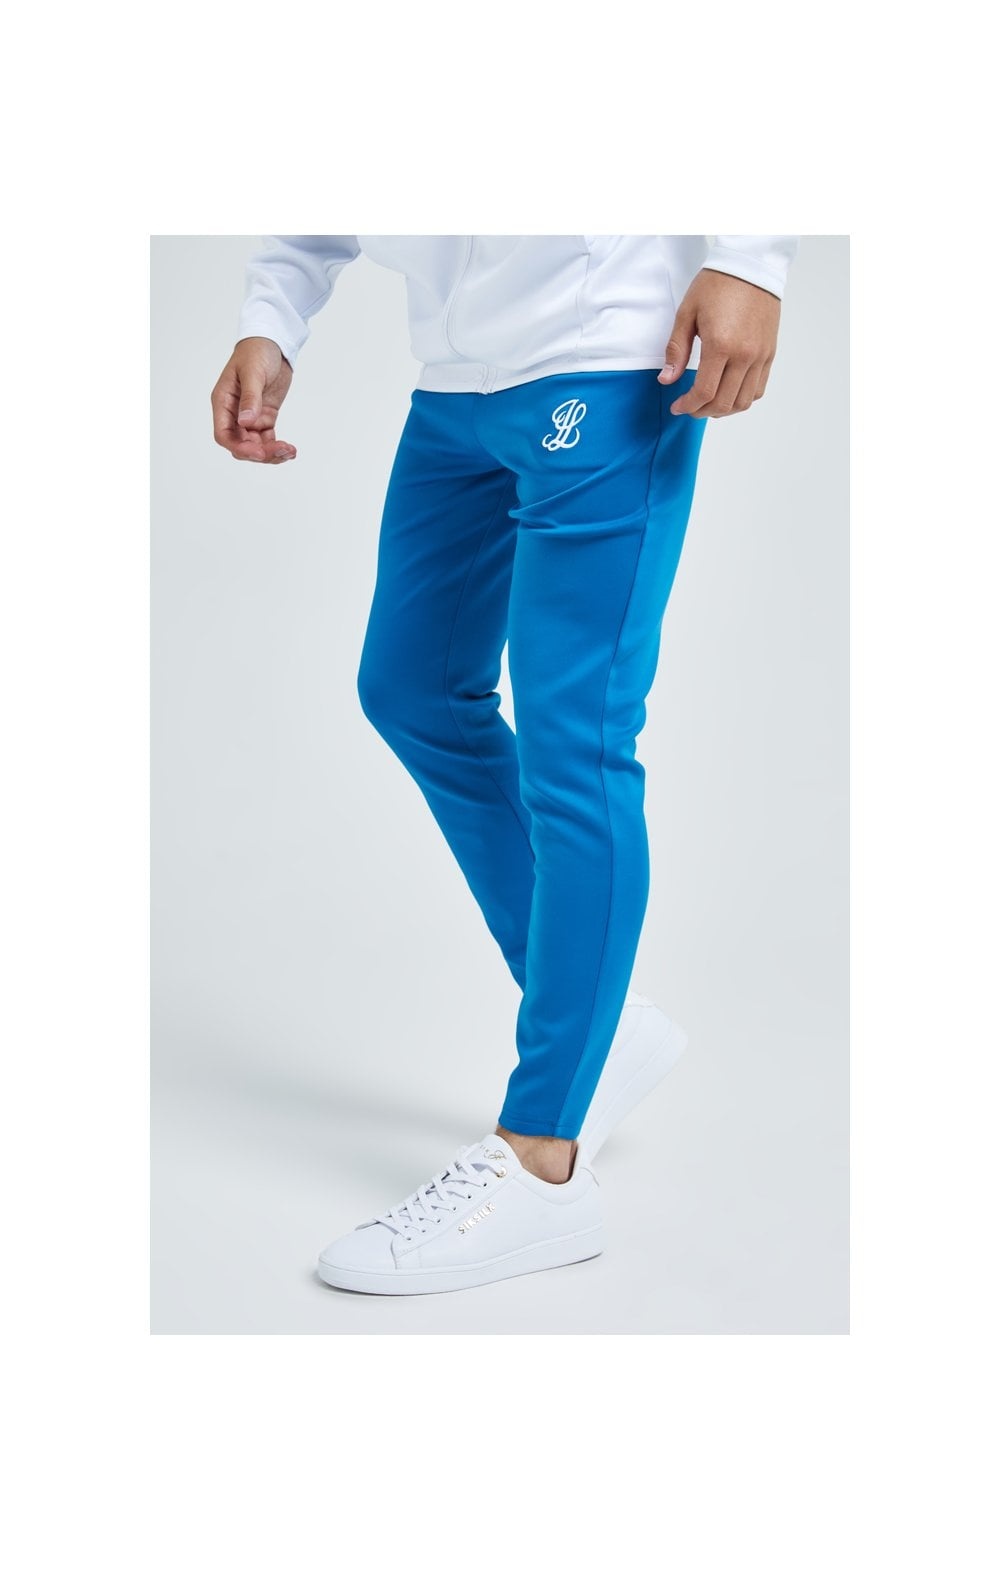 Illusive London Elevate Jogger - Blue & White